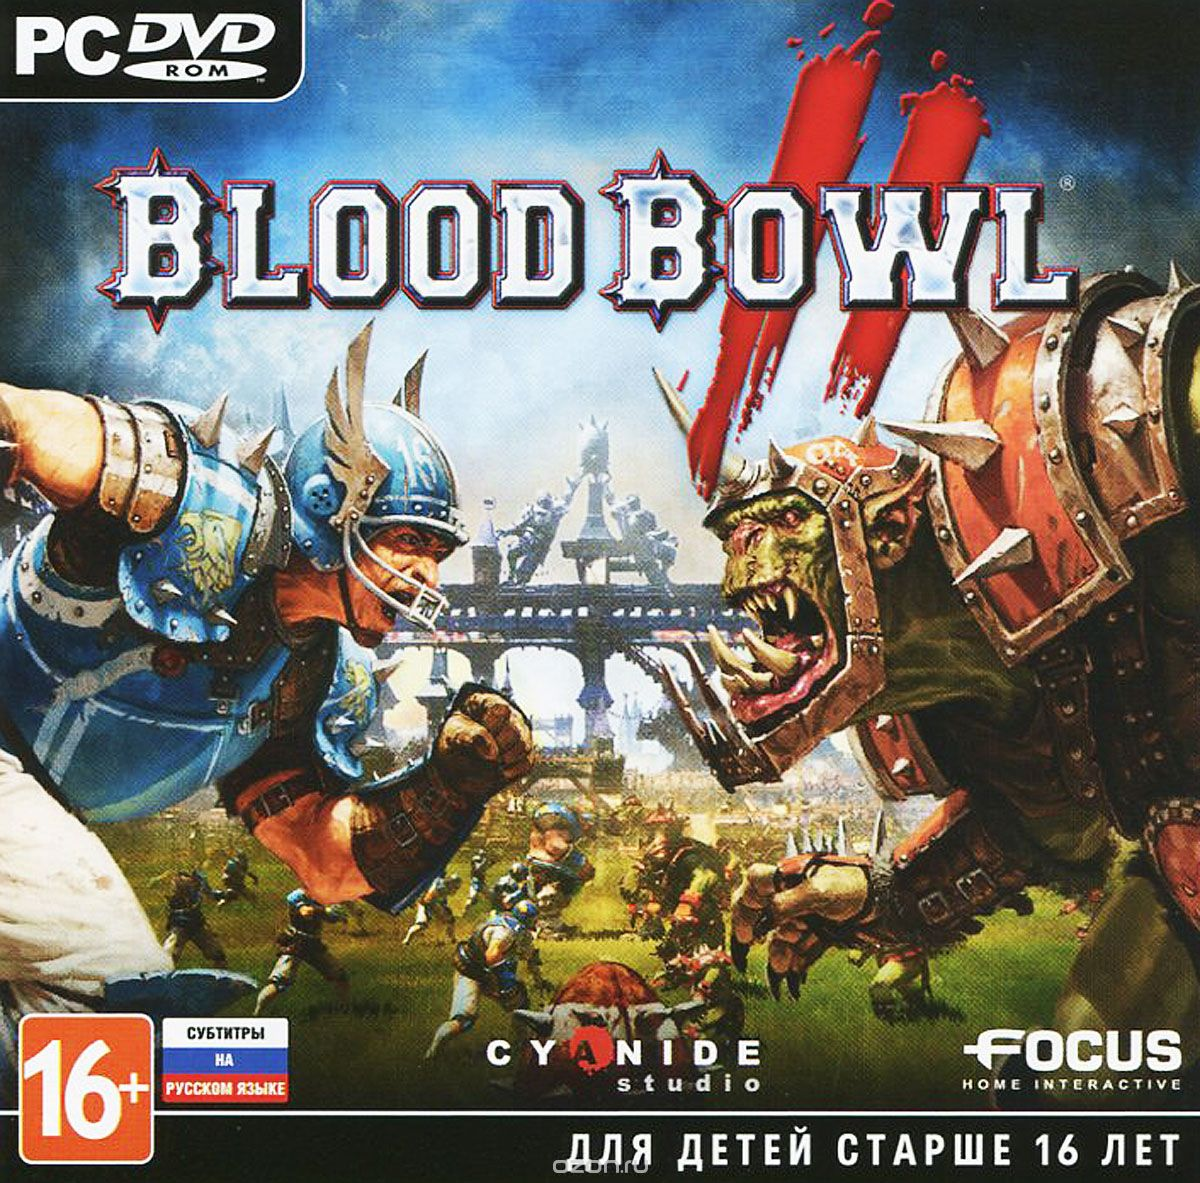 BLOOD BOWL 2 STEAM KEY (RU/CIS  ONLY RUSSIAN LANGUAGE)